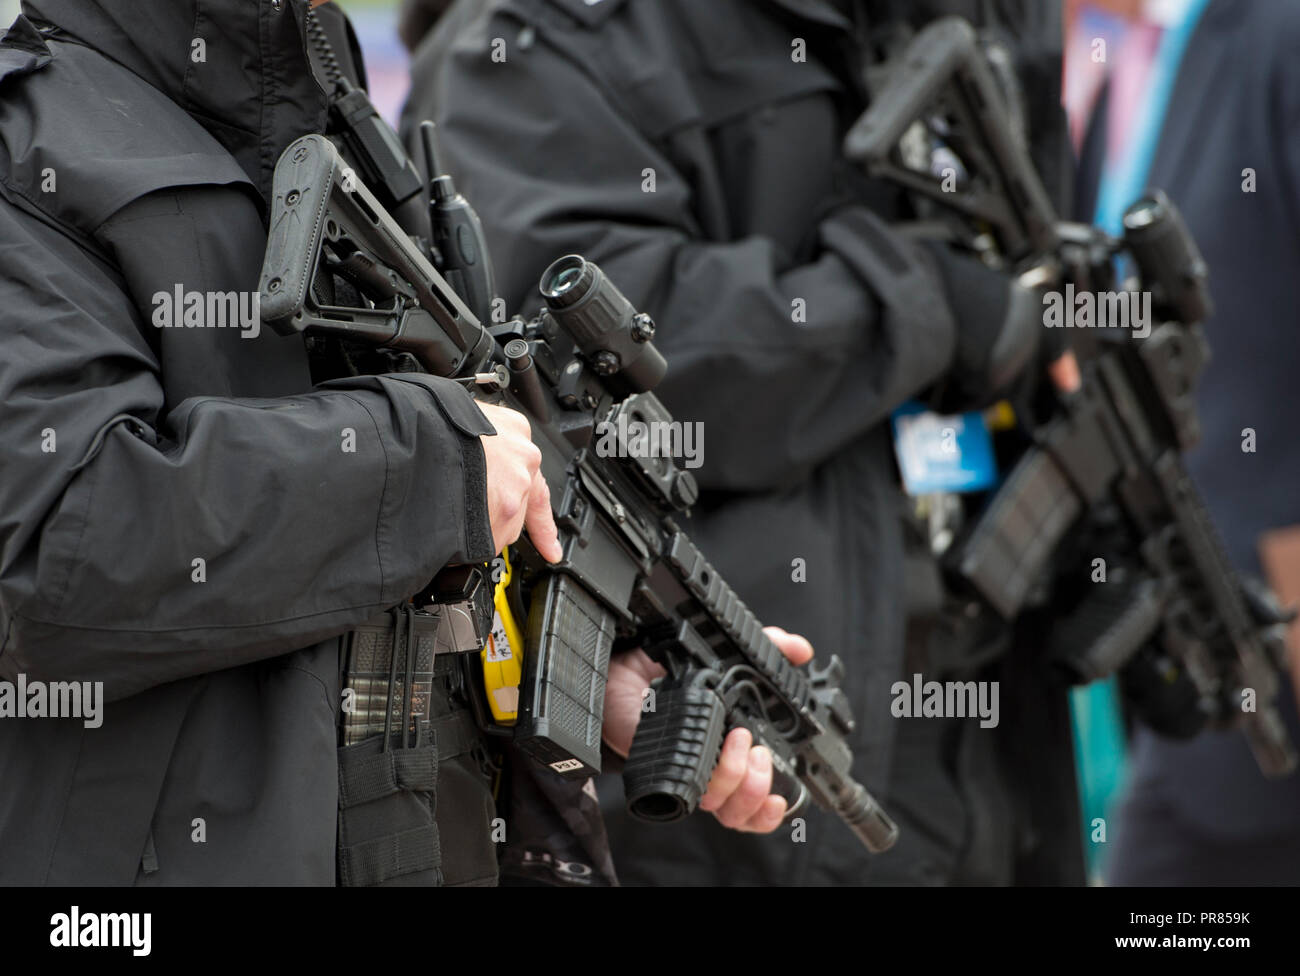 Birmingham, UK. 30th September 2018. Armed police holding semi-automatic rifles near the entrance to the Conservative Party Conference in Birmingham. © Russell Hart/Alamy Live News. - Stock Image